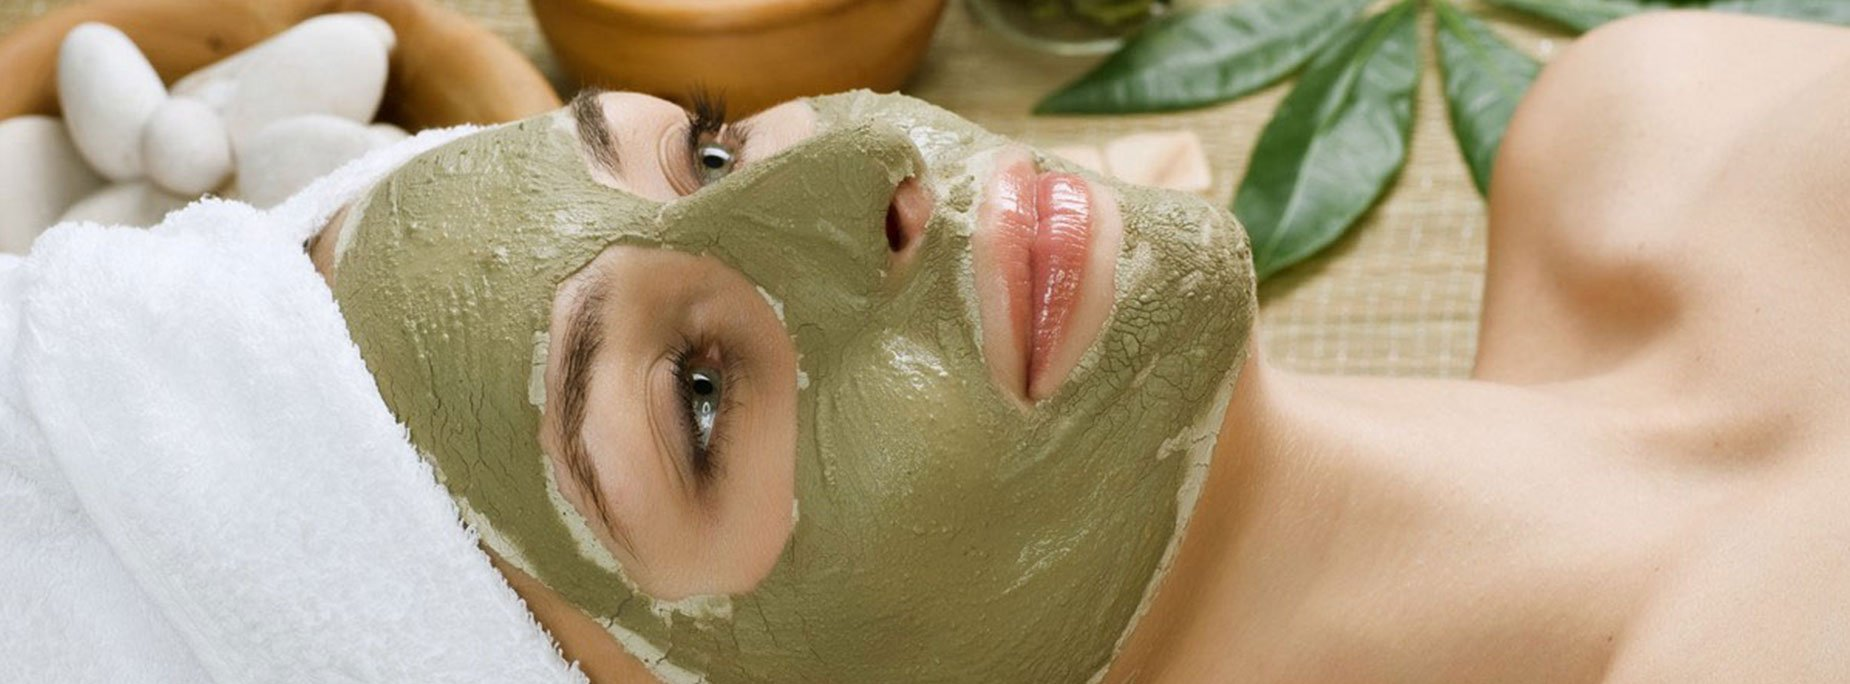 Facial treatment